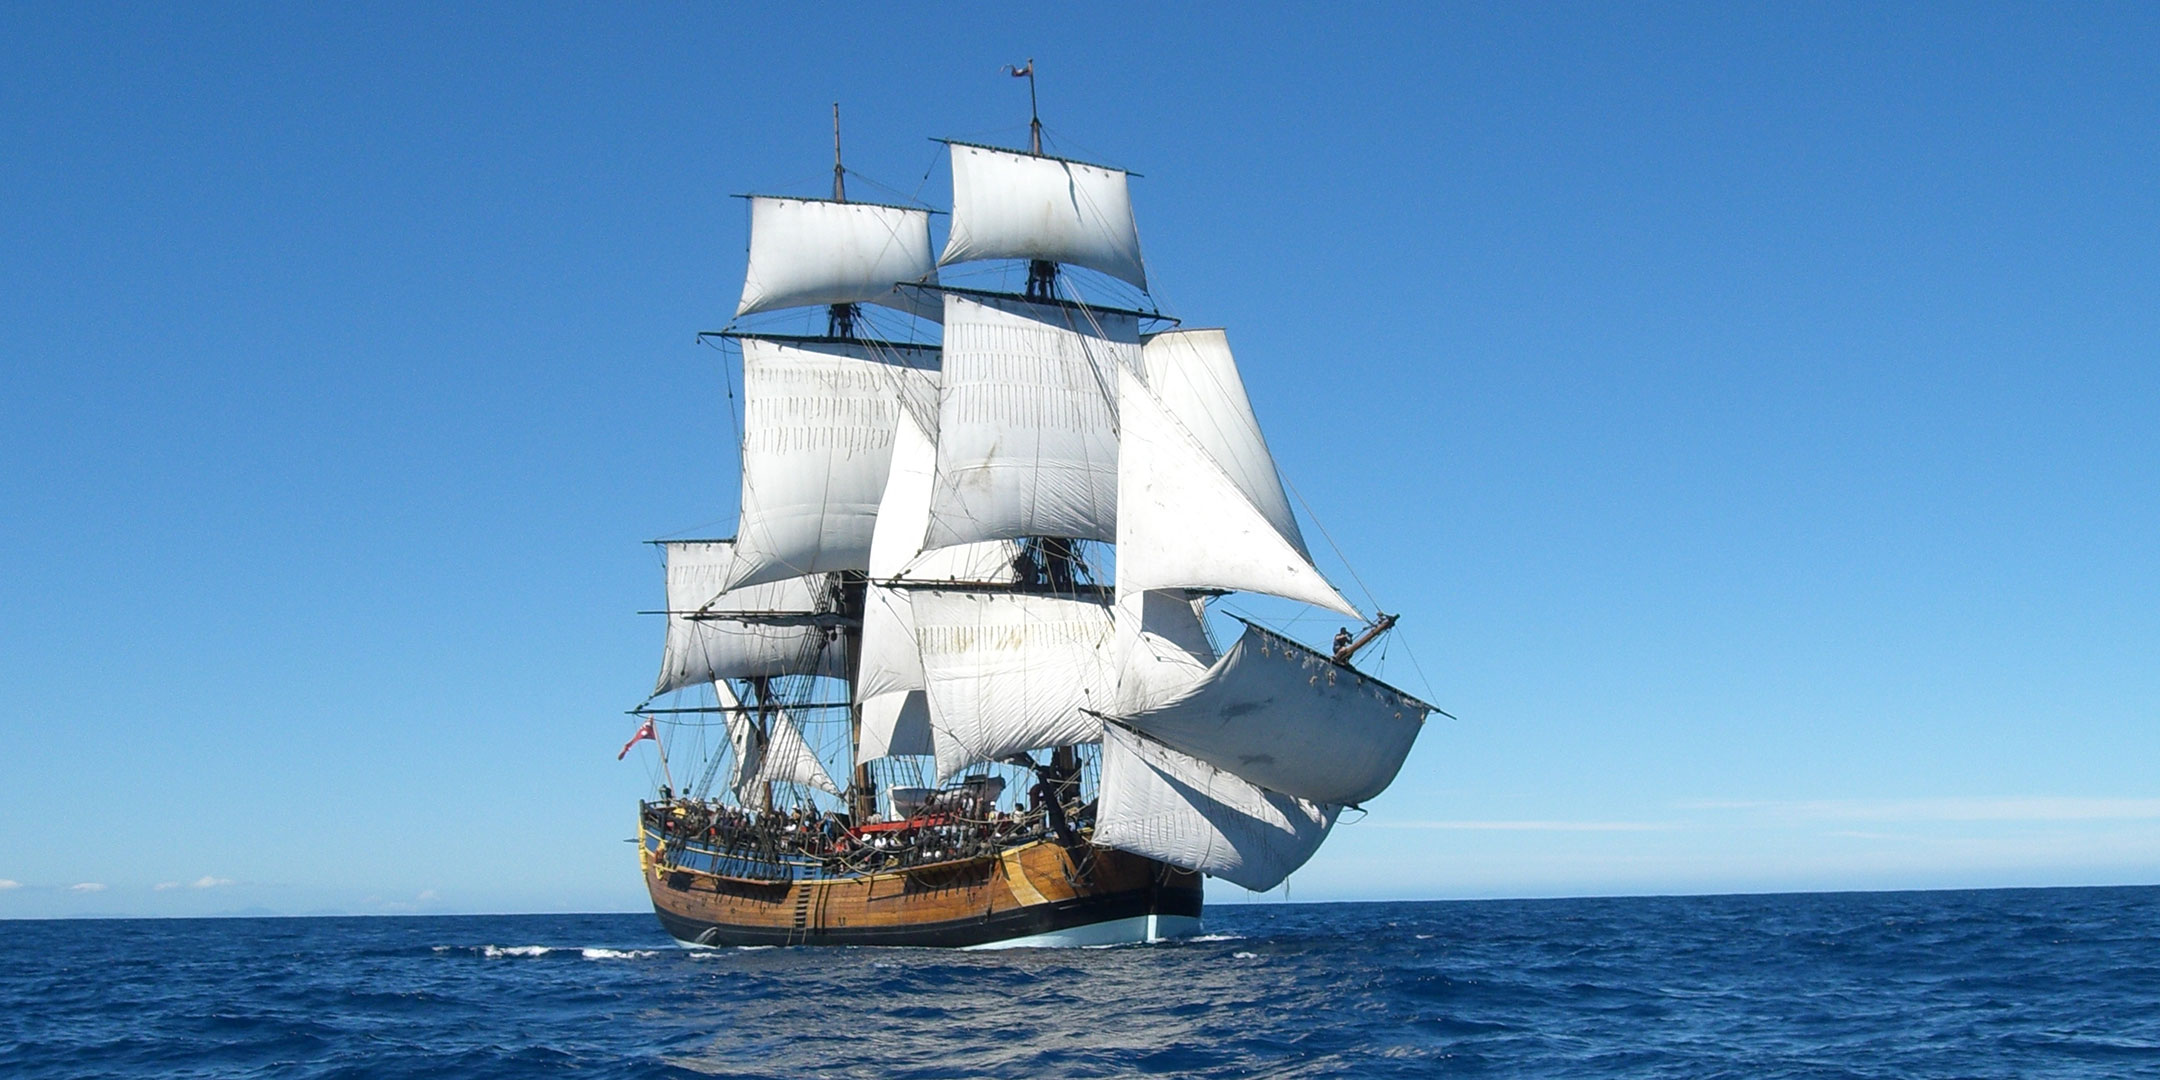 HMB Endeavour under full sail